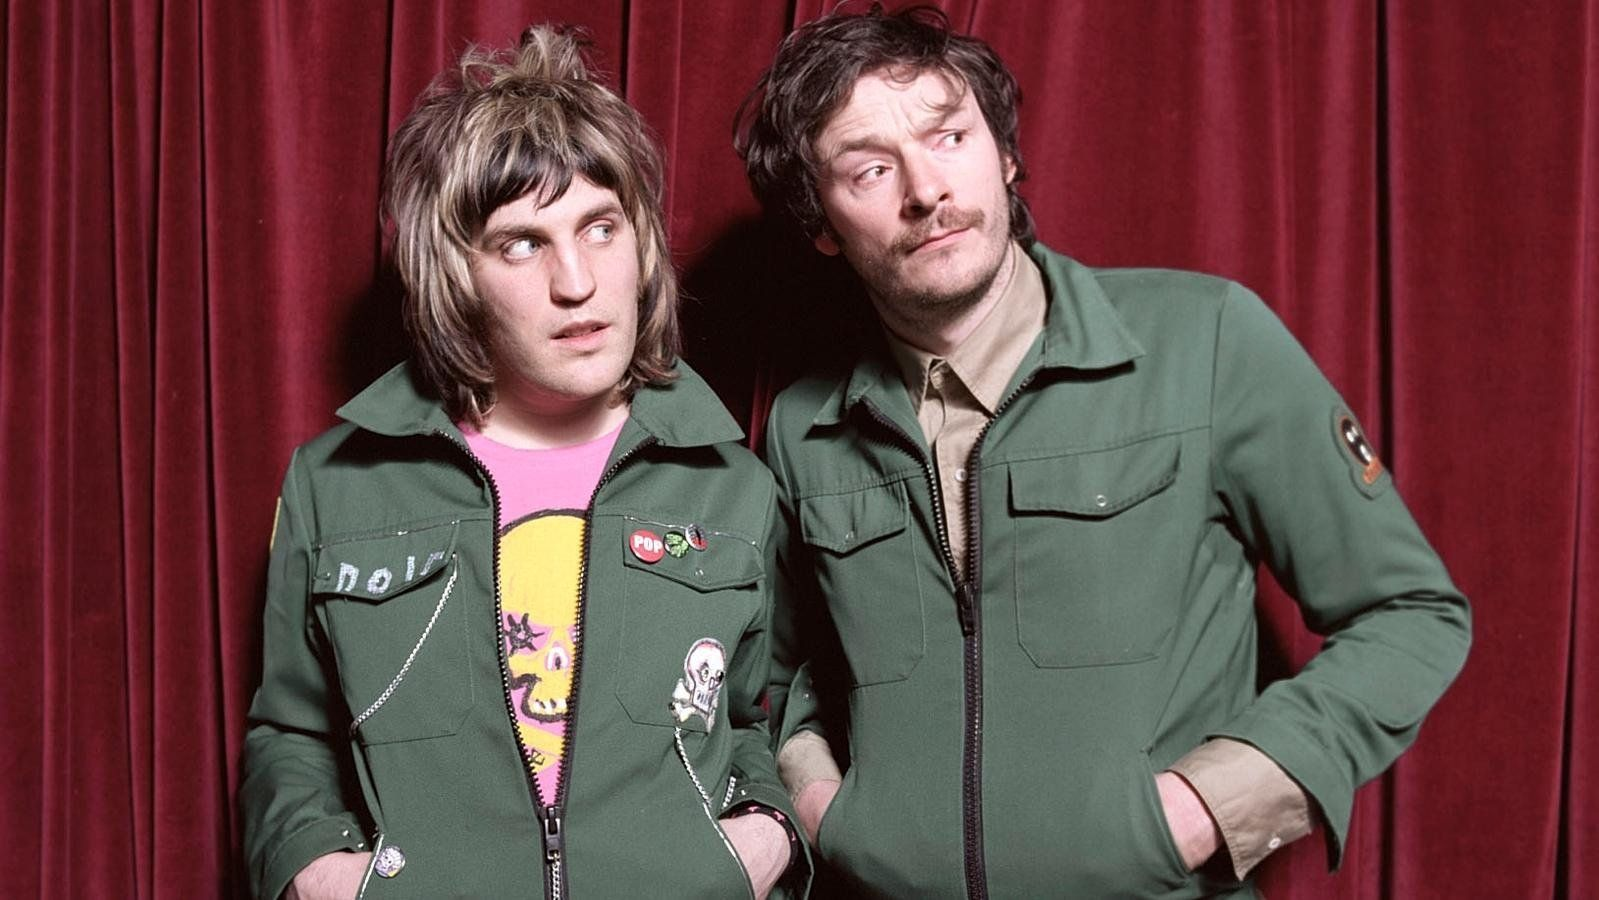 Noel Fielding's Former 'Mighty Boosh' Co-Star Challenges Sandi Toksvig To A (Bun) Fight Over 'Bake